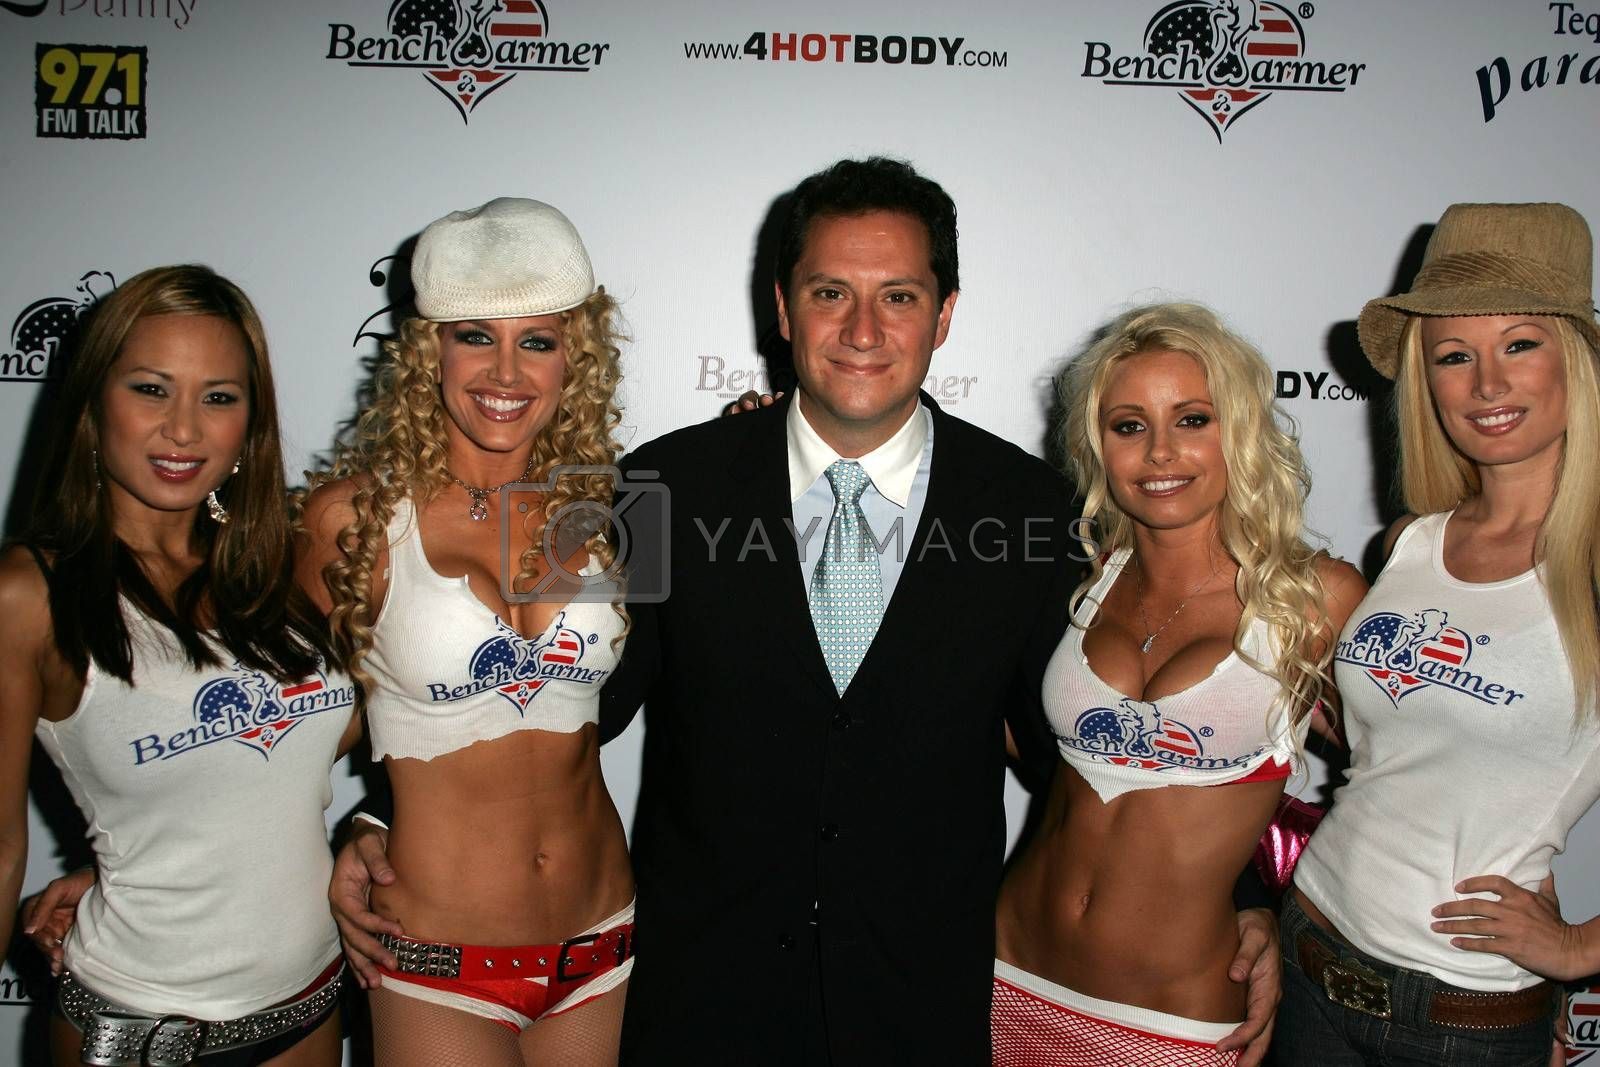 Brian Wallos and benchwarmer models at Bench Warmer's 2nd Annual 4th of July Celebration, The Day After, Hollywood, CA 06-29-05